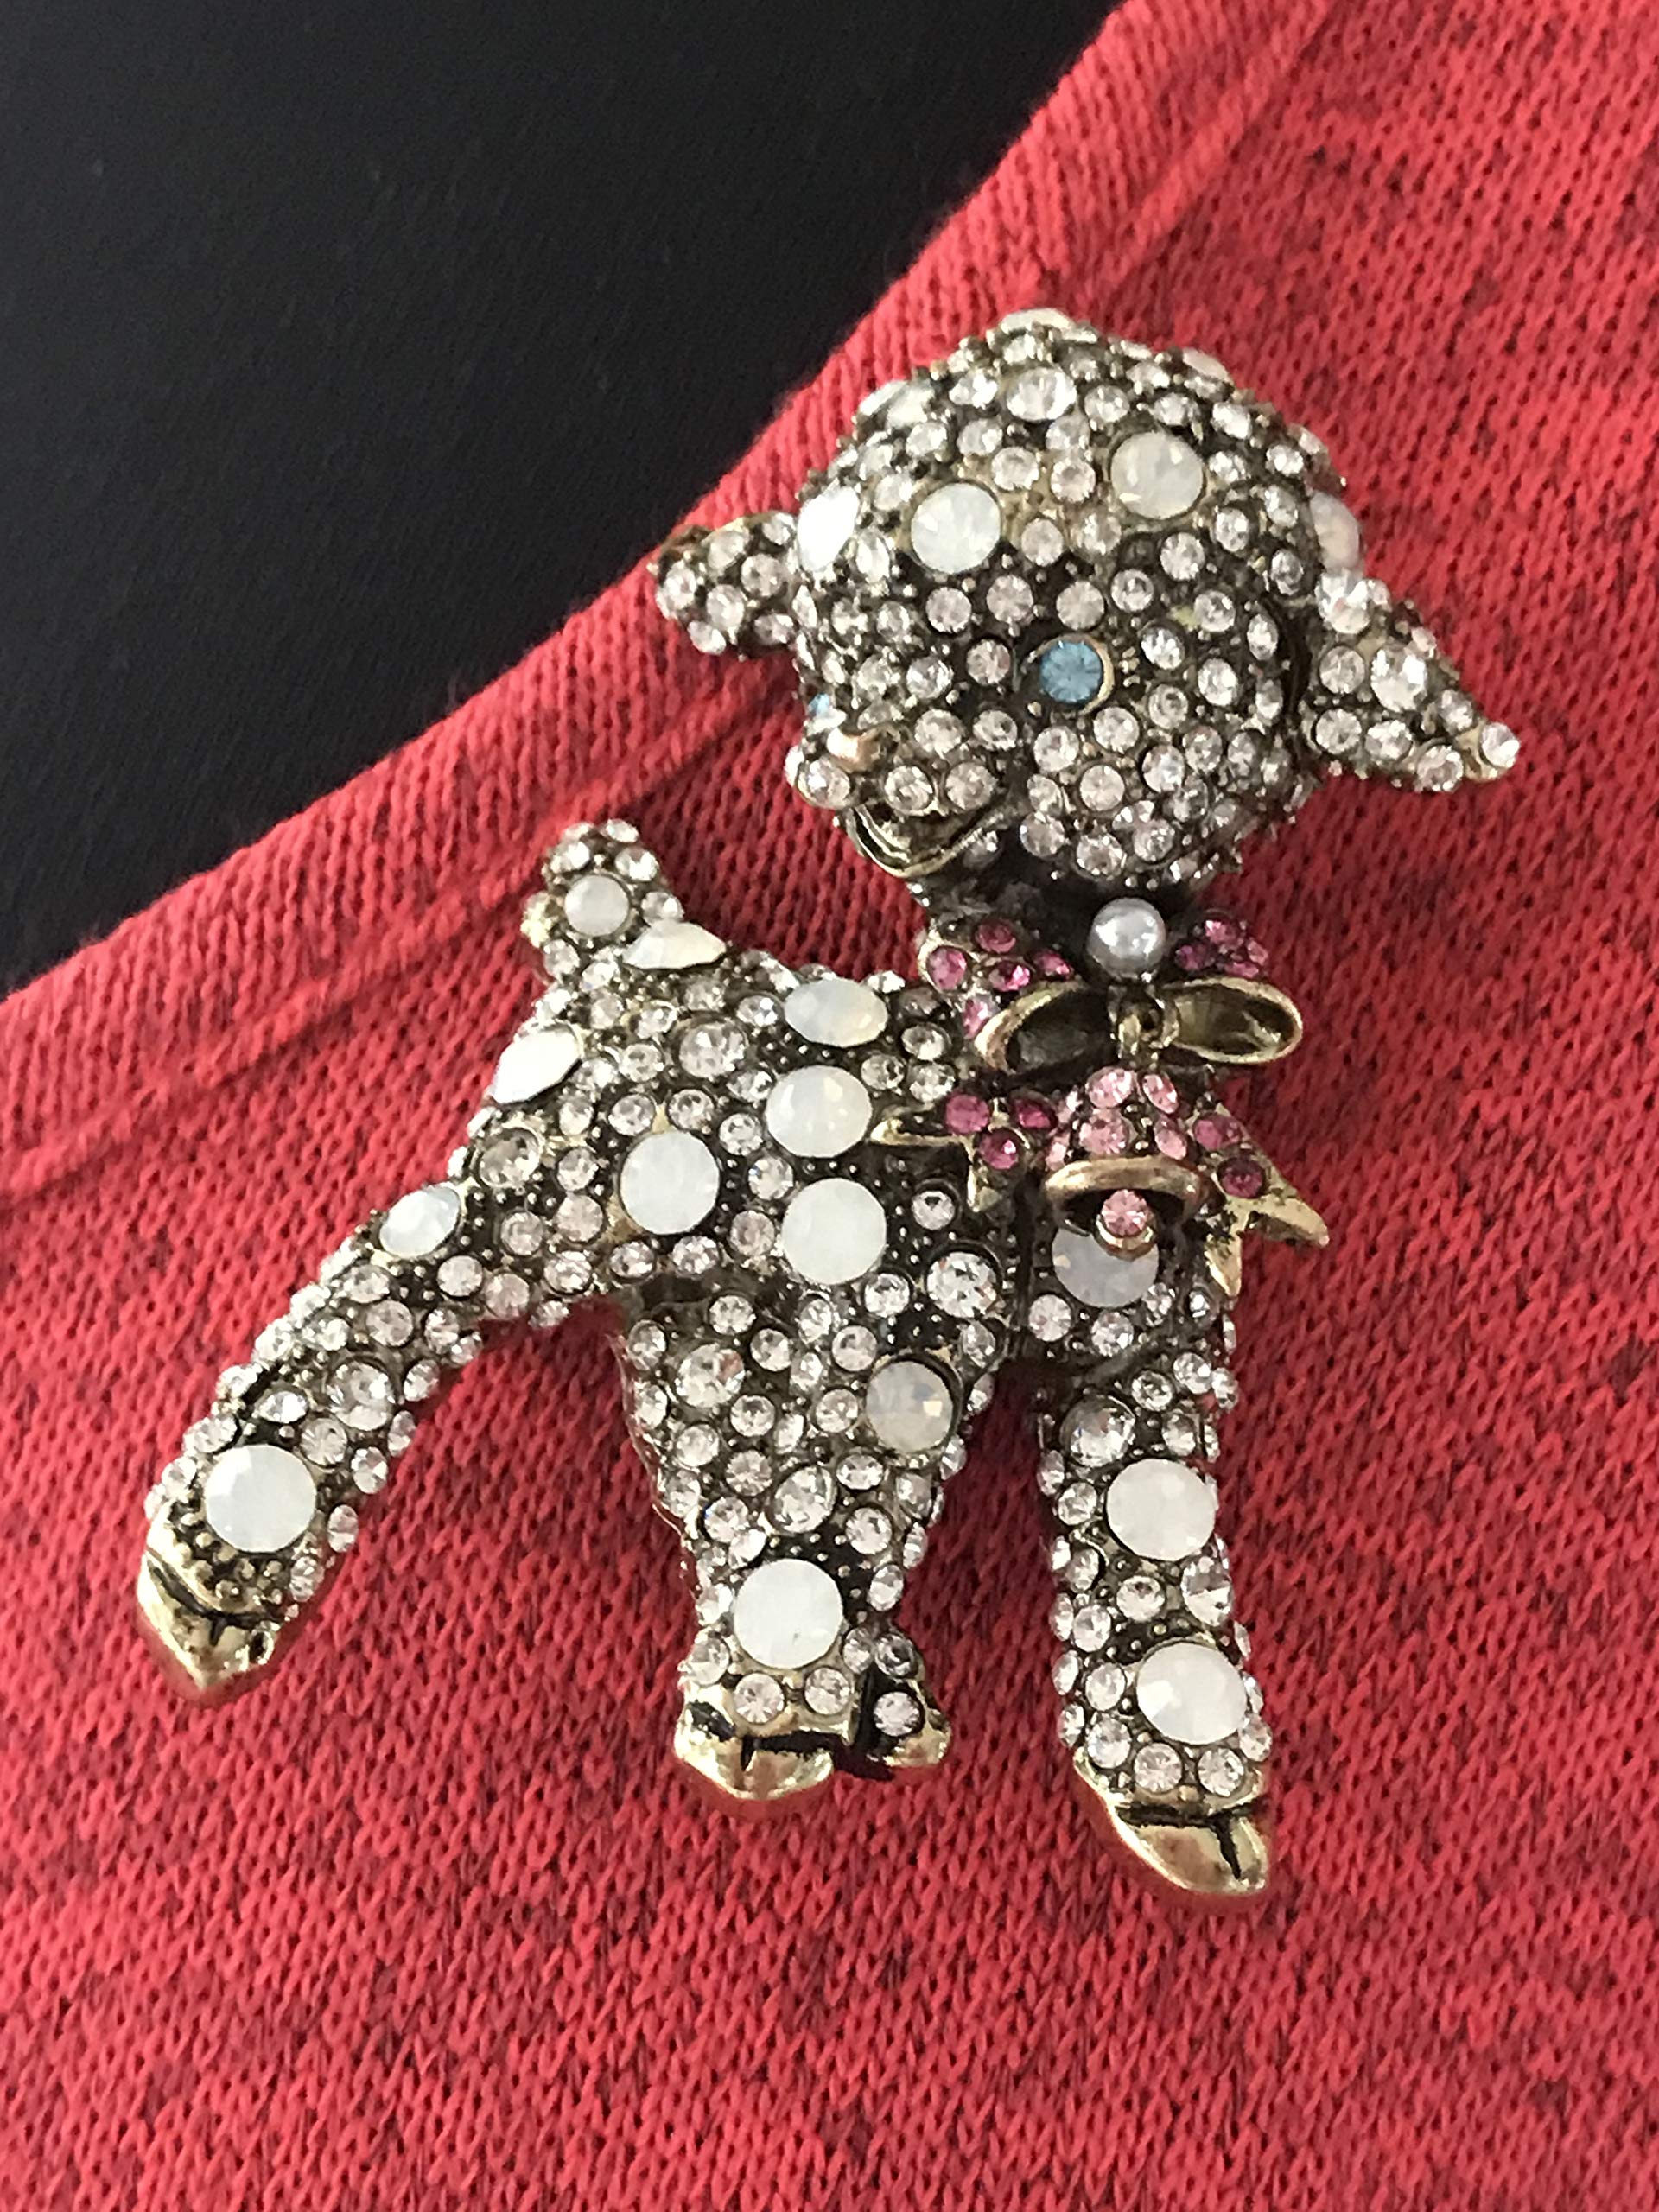 Heidi Daus Mairzy Doats Pavé Crystal Cutest Little Thing You'll See, Grab IT!!! by Heidi Daus (Image #4)